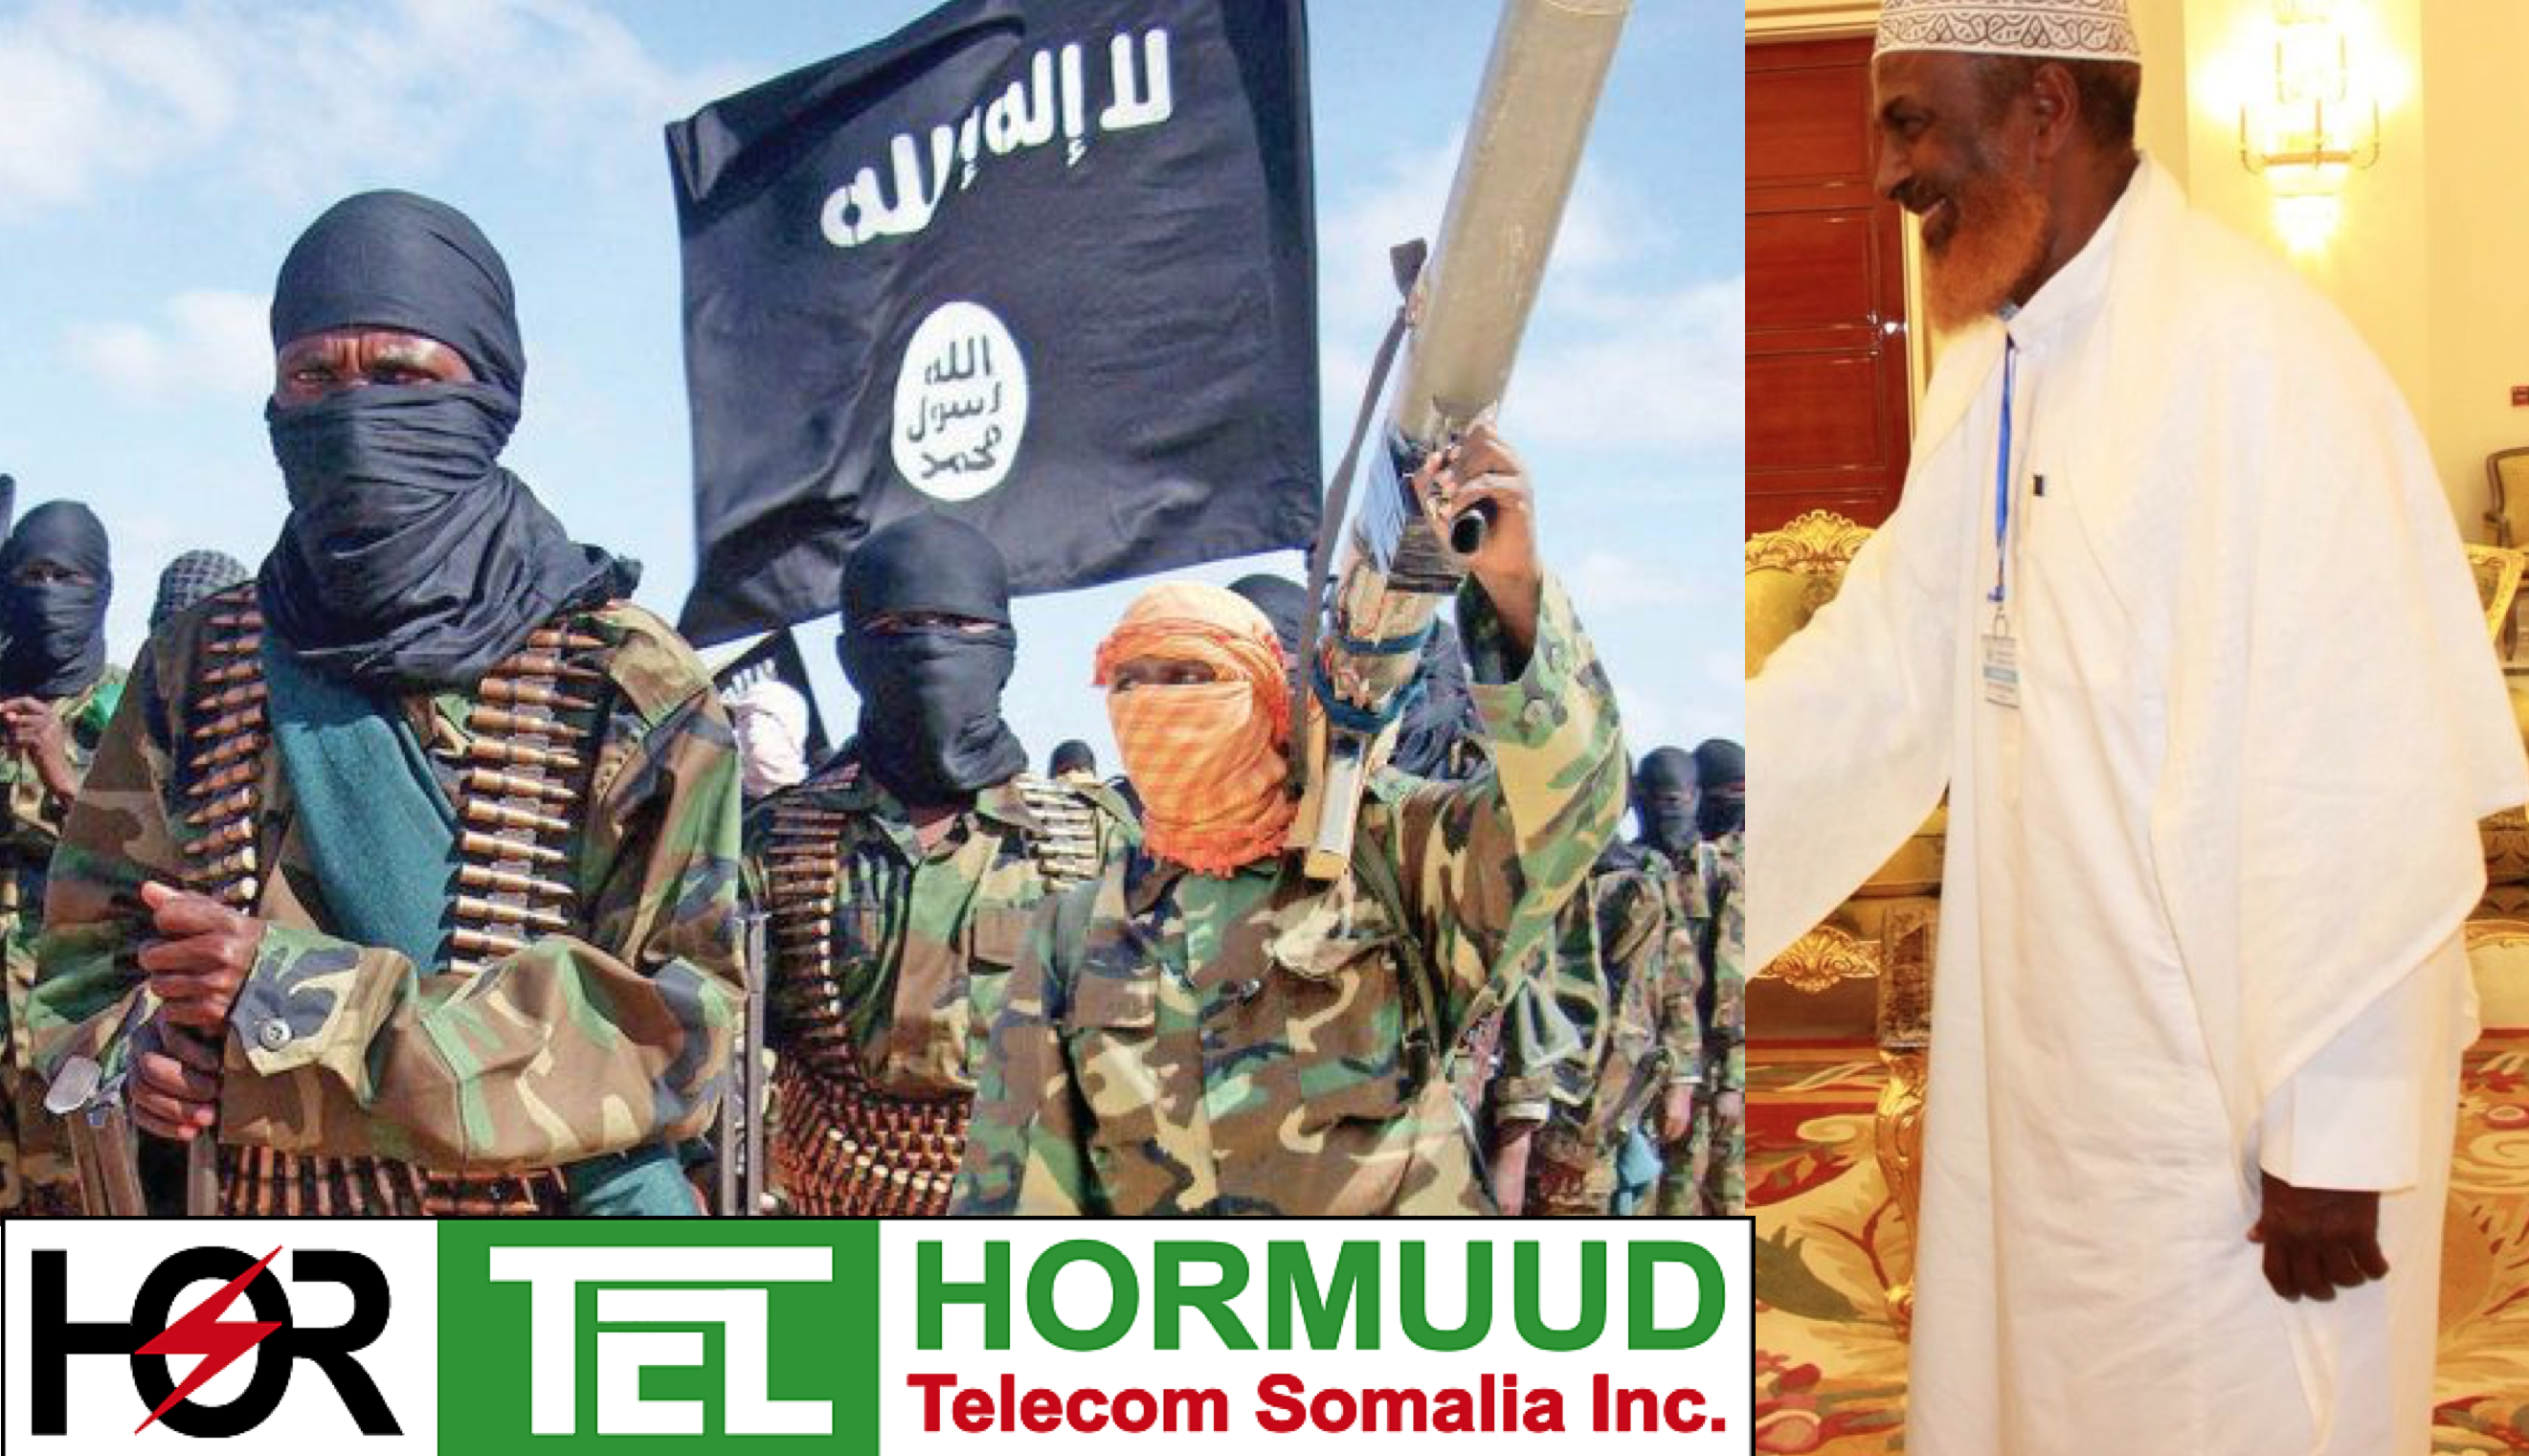 Somalia:Shareholders of Hormuud telecom have links with terrorist Al-Shabaab.